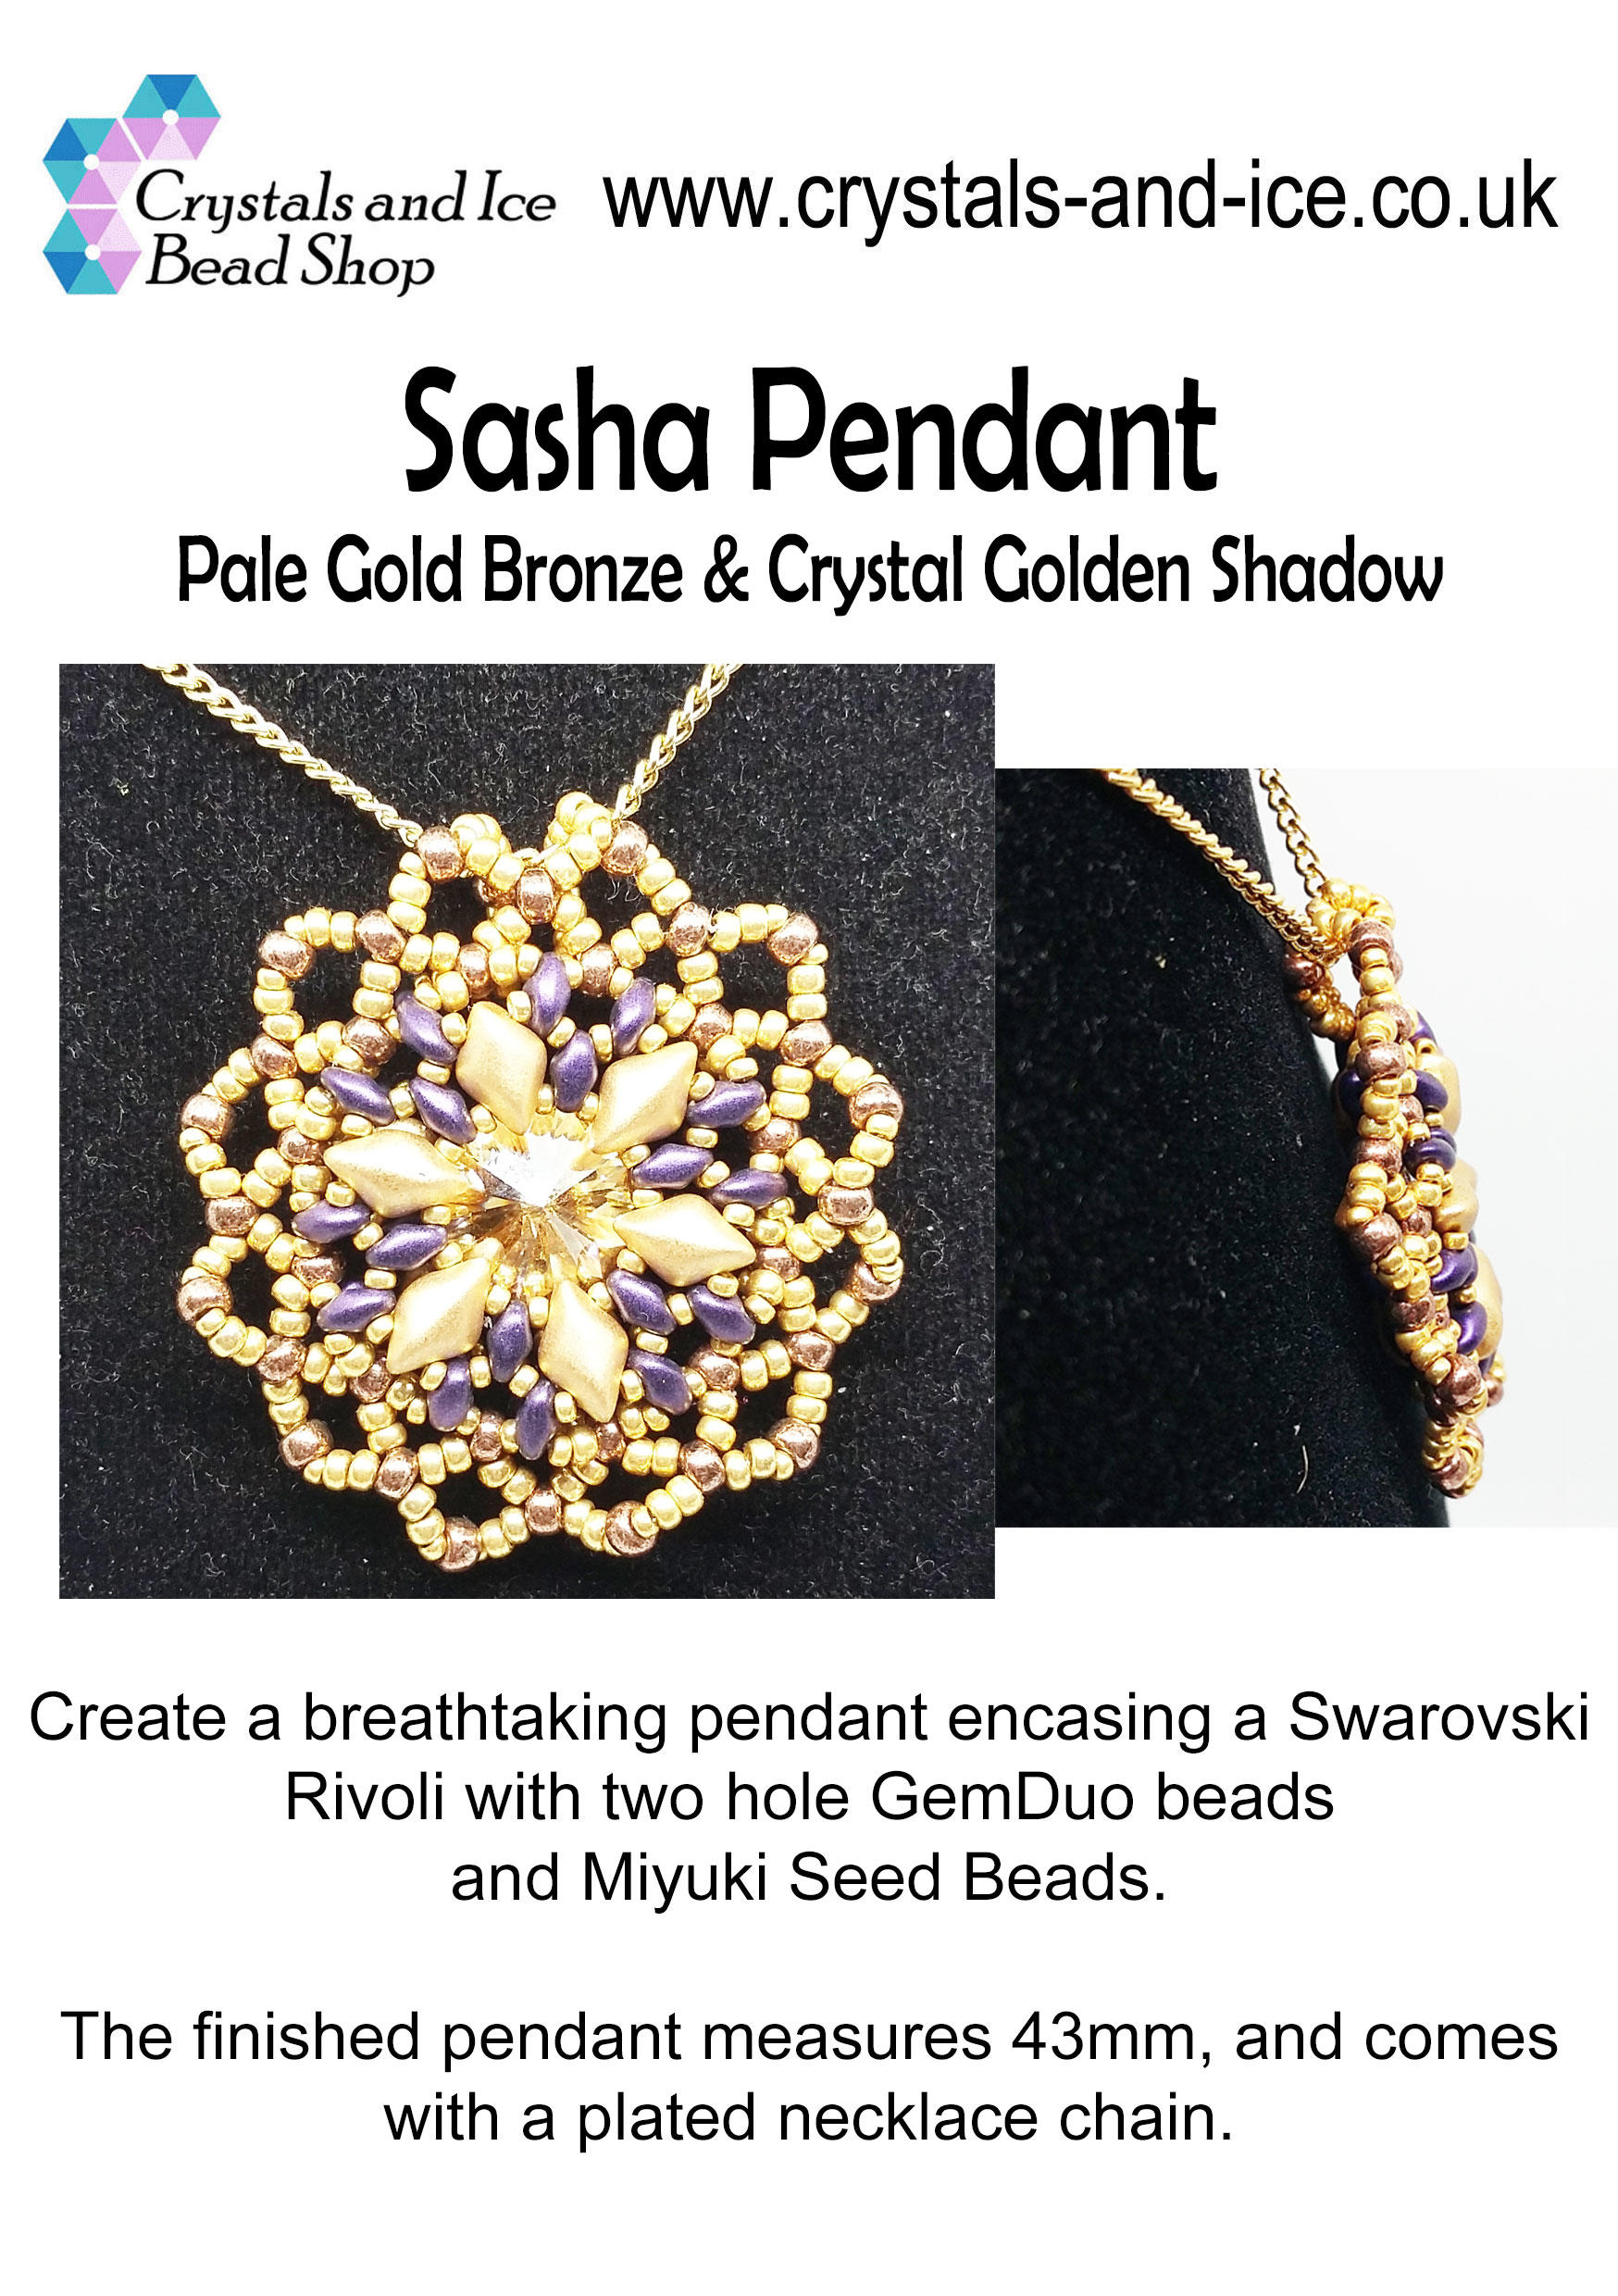 Sasha Pendant Kit - Pale Gold Bronze and Crystal Golden Shadow